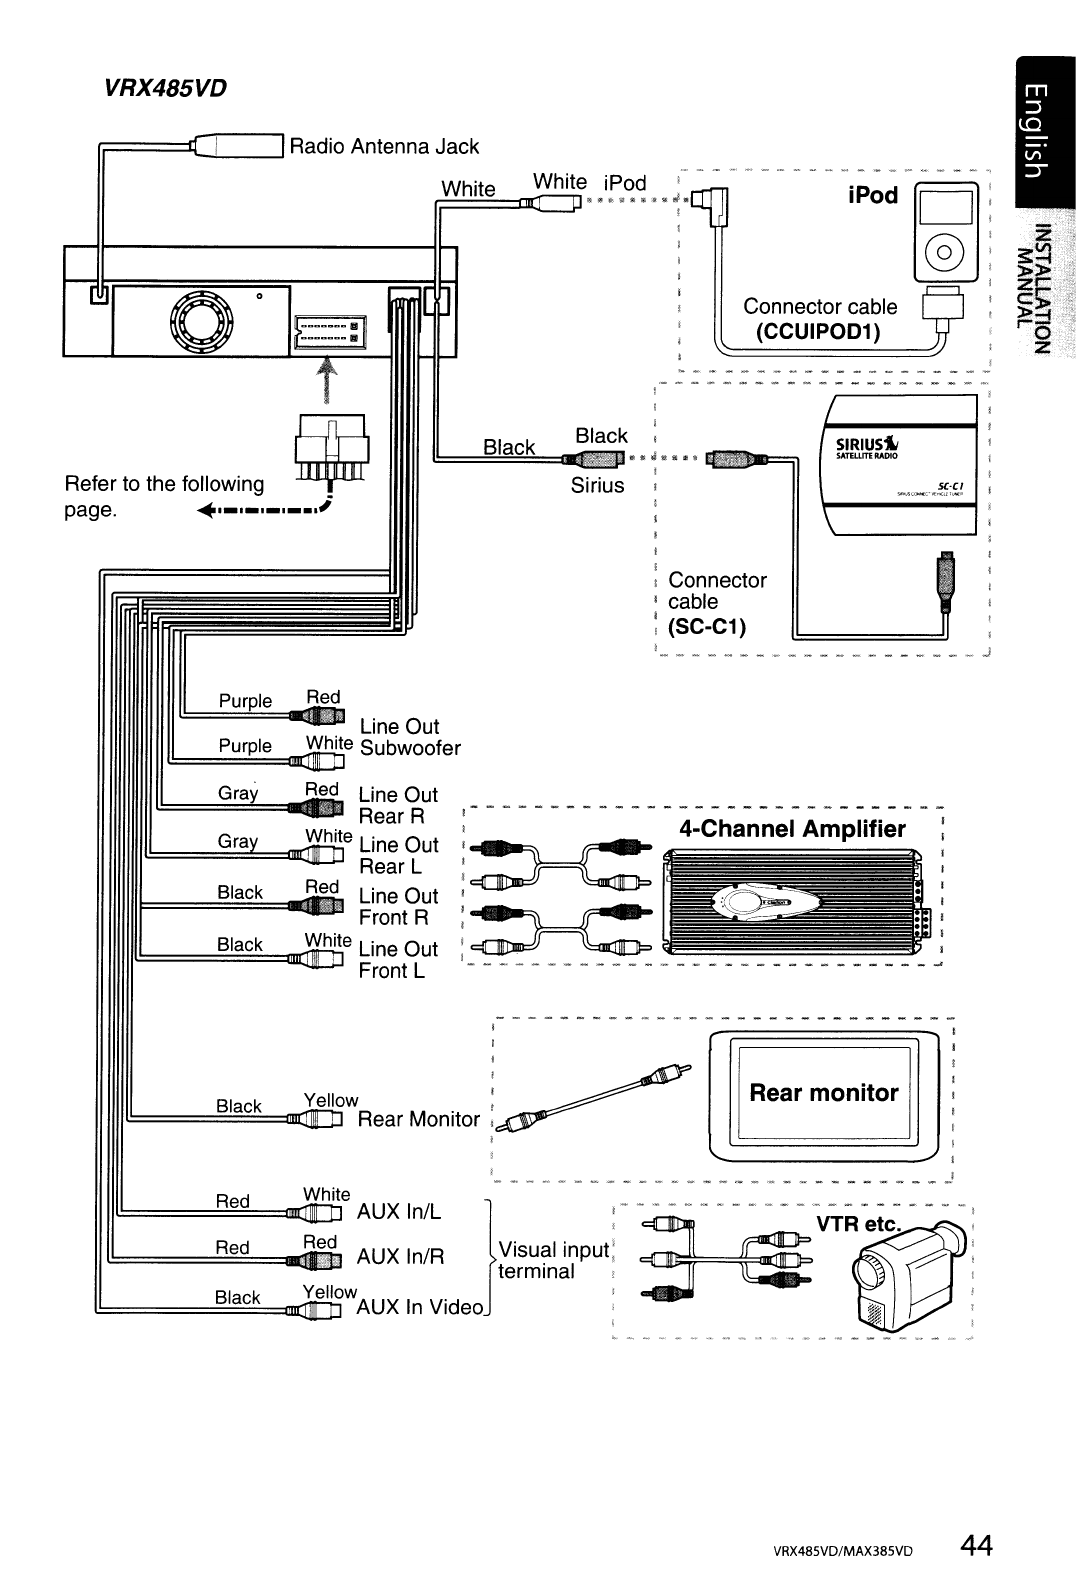 Page 44 of Clarion Car Stereo System MAX385VD User Guide | ManualsOnline.comCar Audio and Video Manuals - ManualsOnline.com